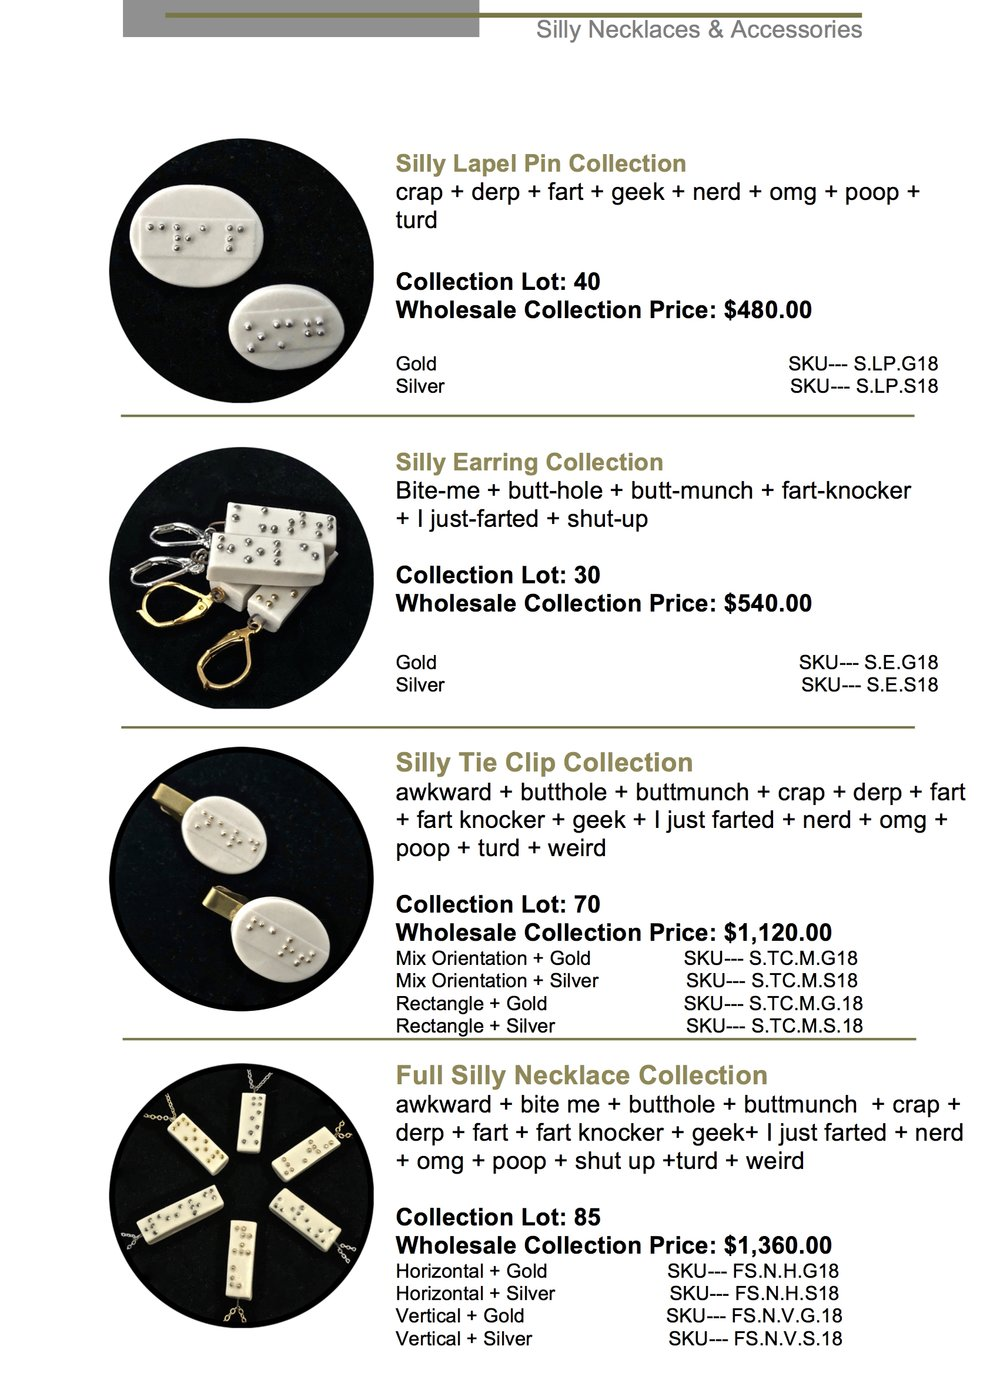 Wholesale Catalog pg 5.jpg